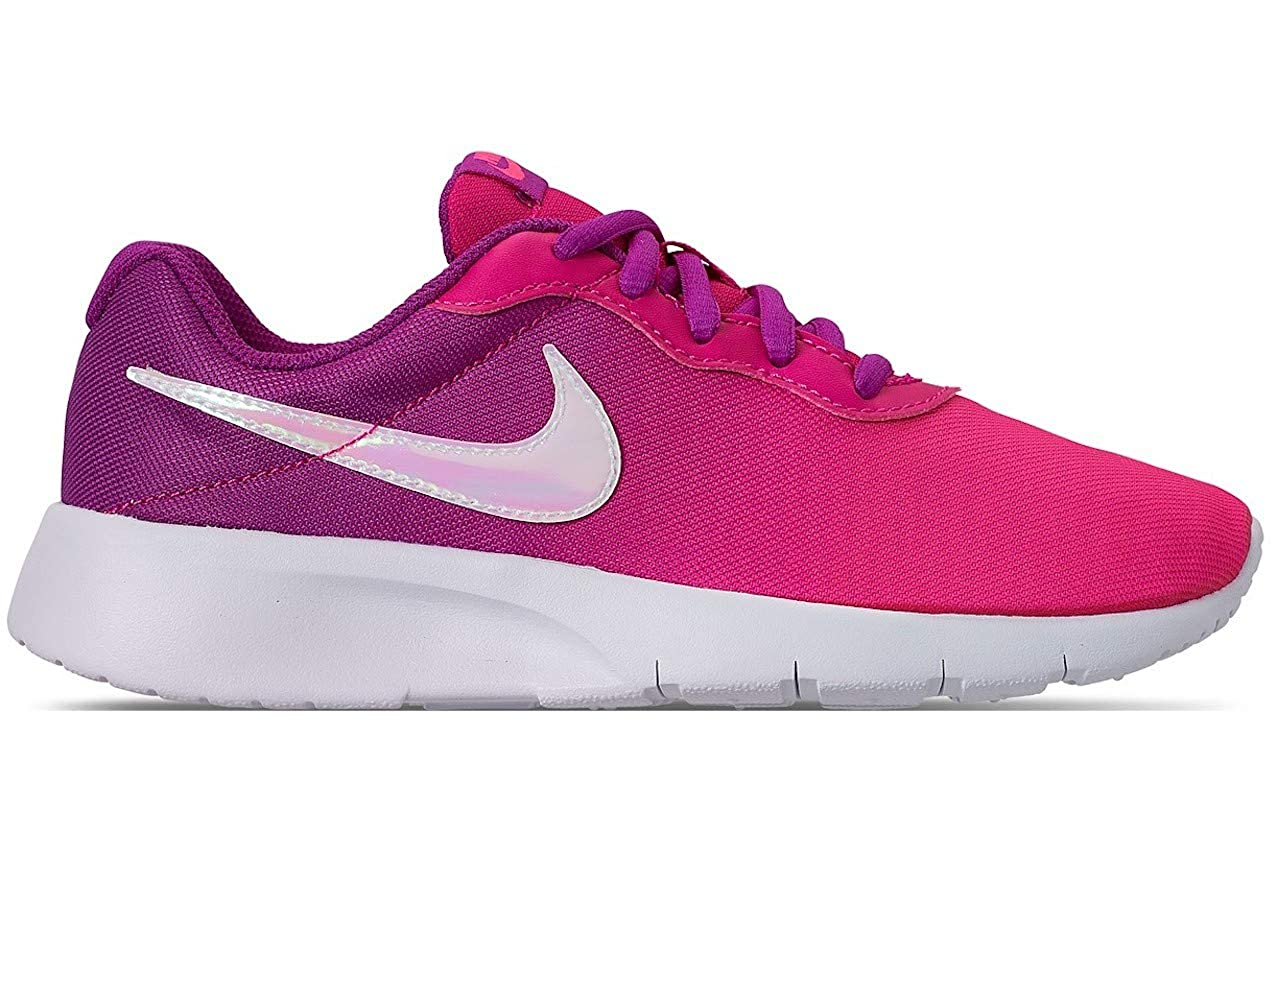 e054925fa7 Amazon.com | Nike Girl's Tanjun Print Shoe Hyper Violet/Pink Blast/Deadly  Pink Size 6 M US | Running